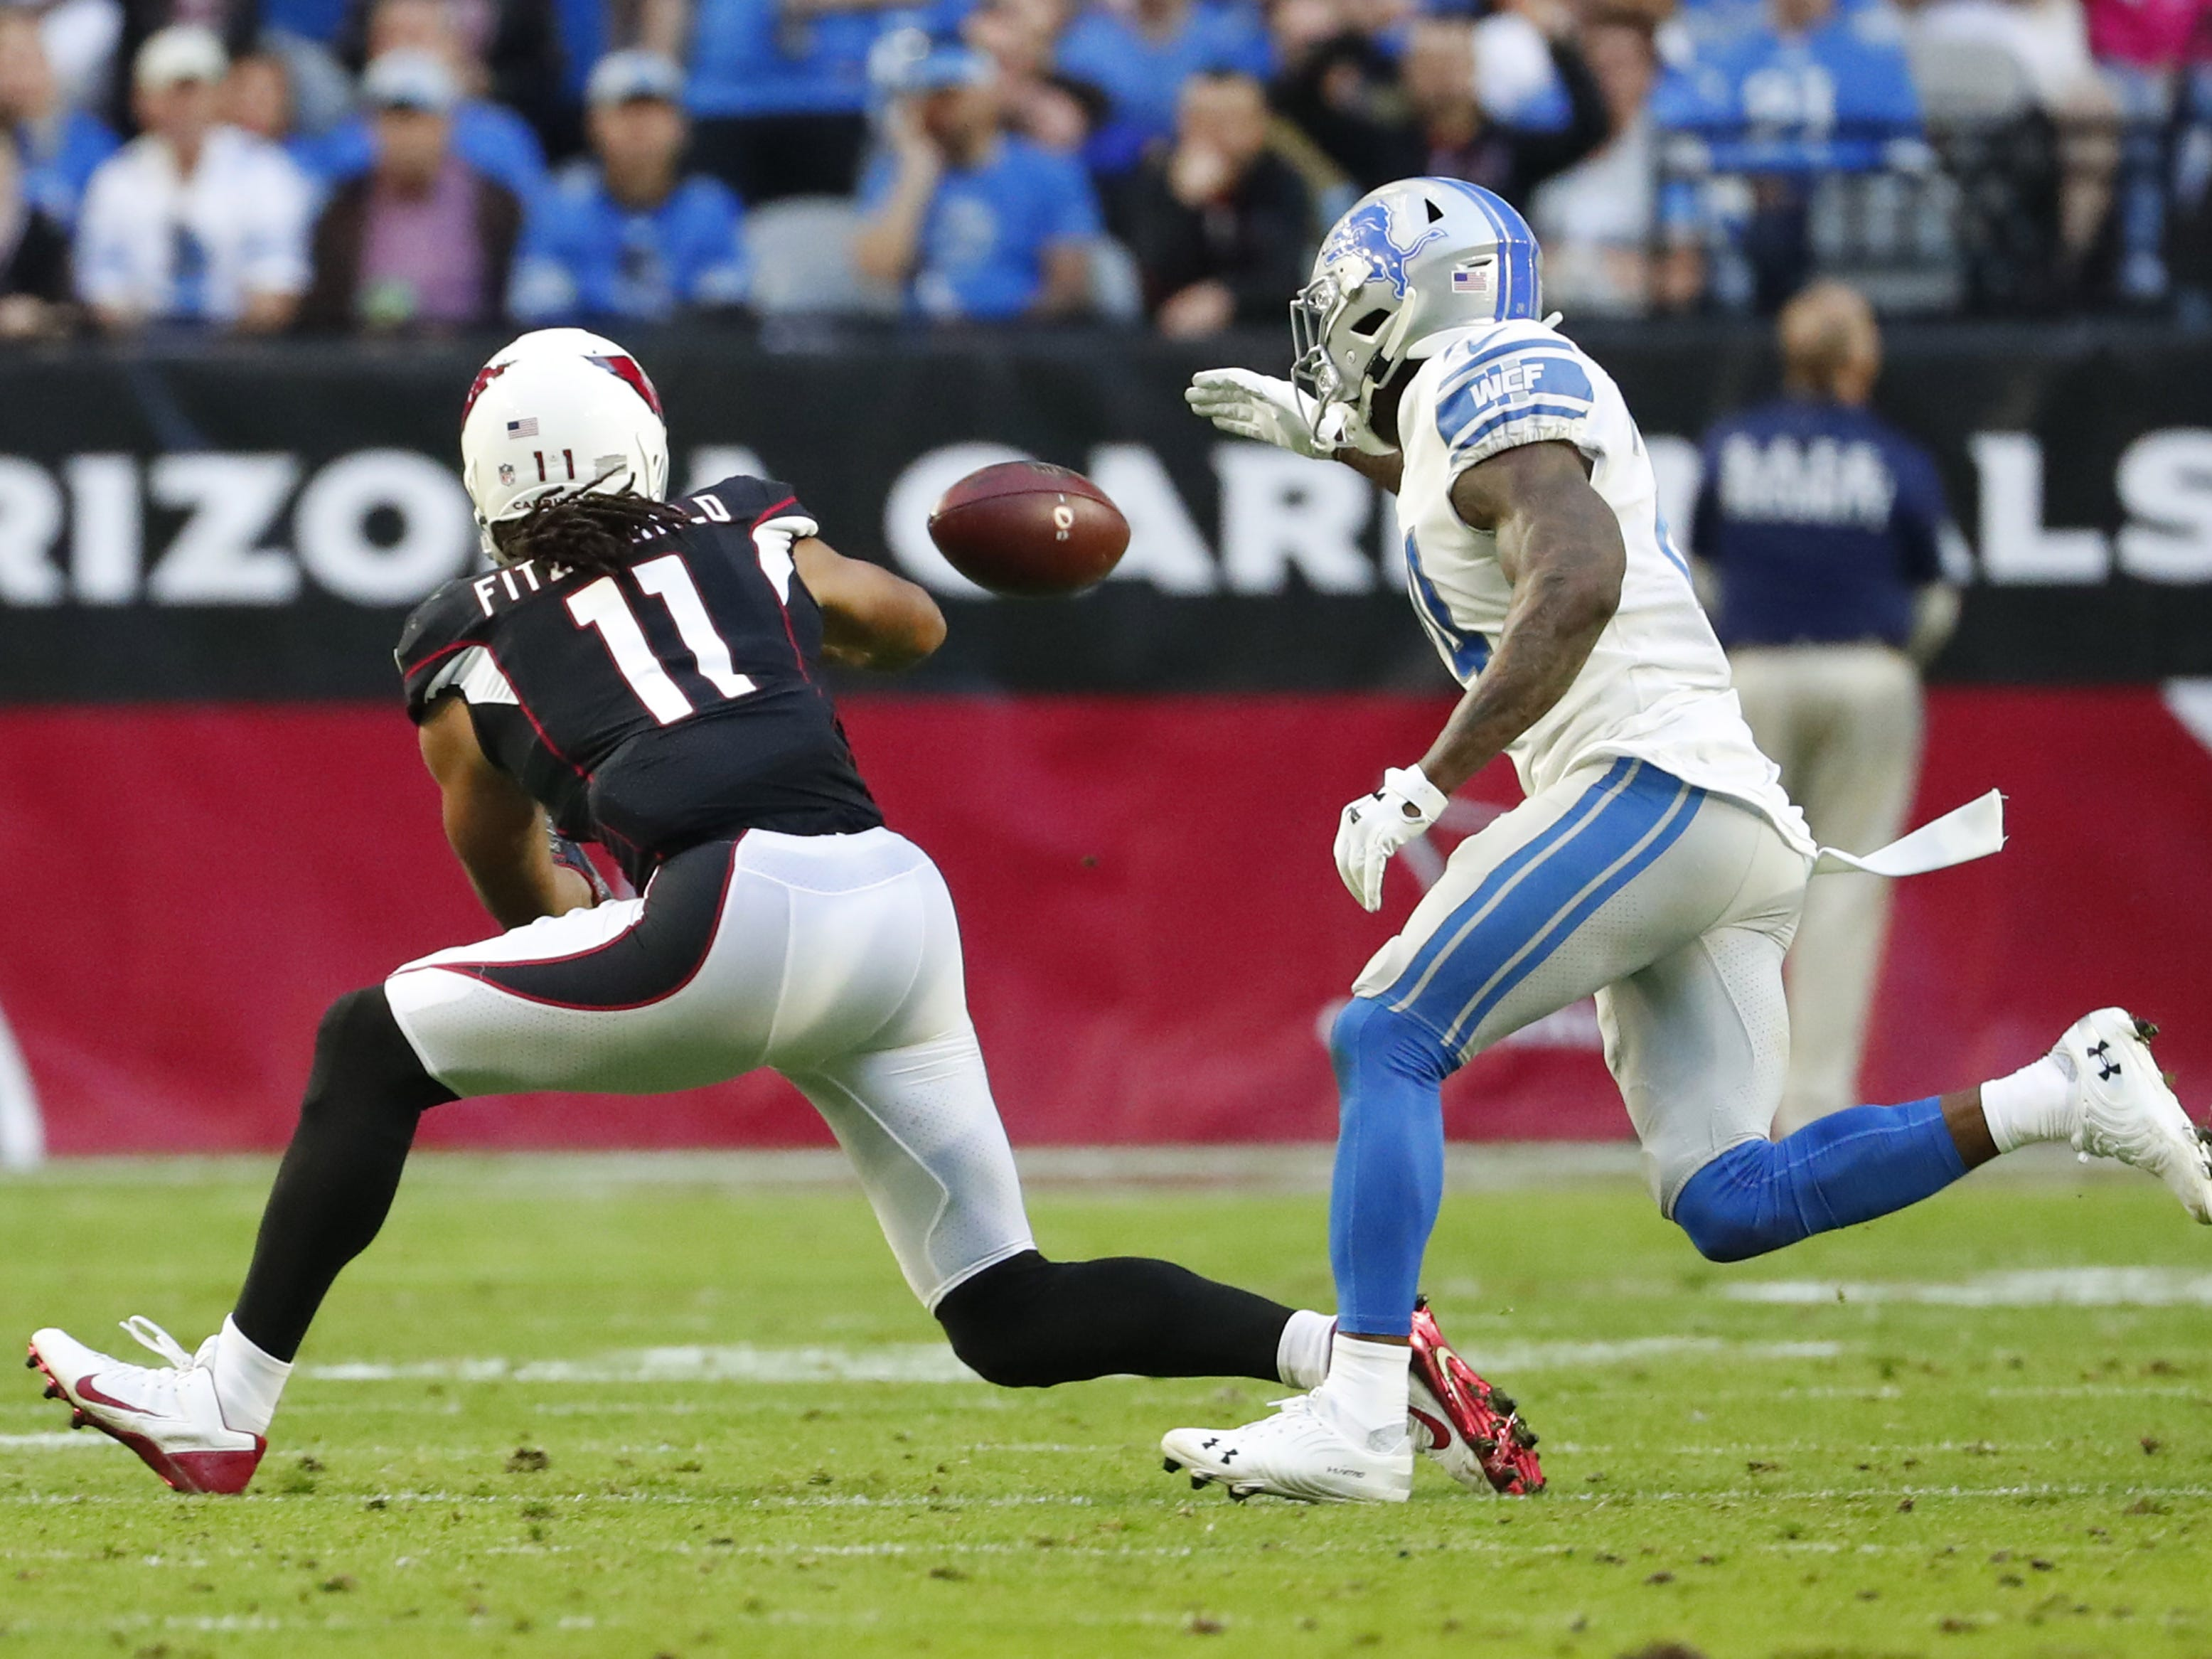 Arizona Cardinals wide receiver Larry Fitzgerald (11) catches a pass while defended by Detroit Lions cornerback Nevin Lawson (24) during the second half in Glendale, Ariz. December 9. Fitzgerald broke Jerry RiceÕs record for most career receptions with one team.